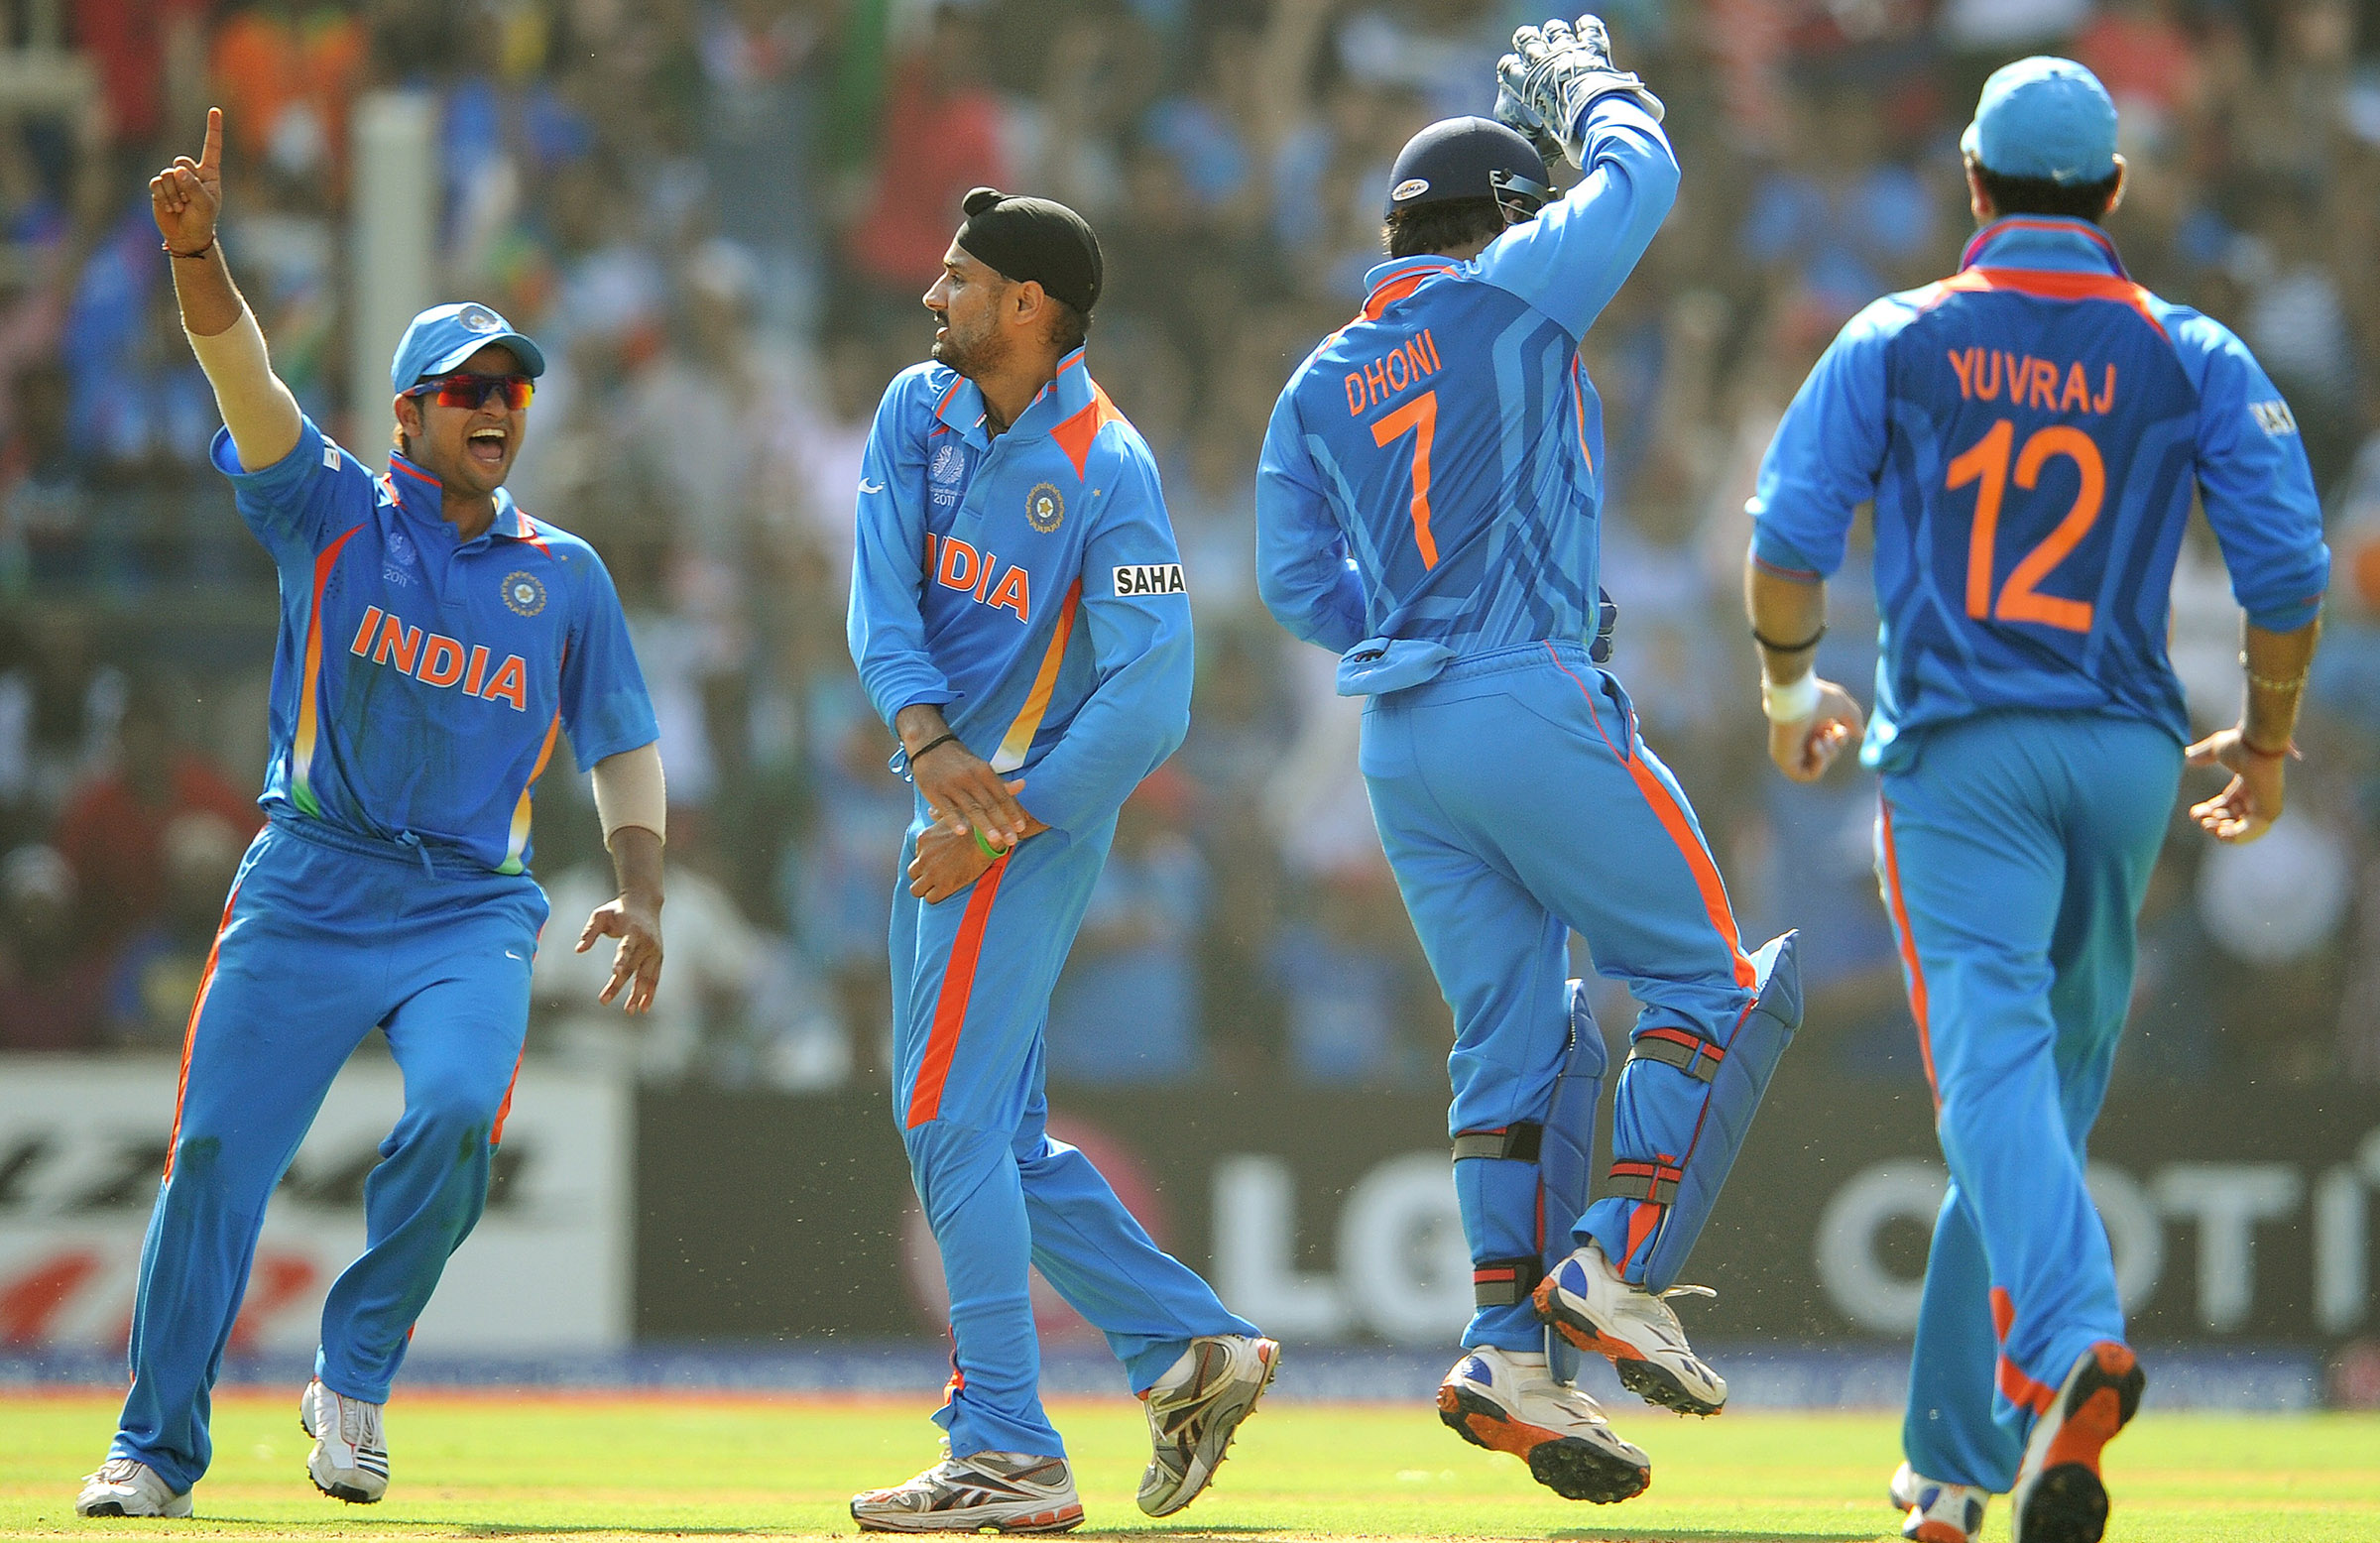 Indian ODI squad to face Sri Lanka announced